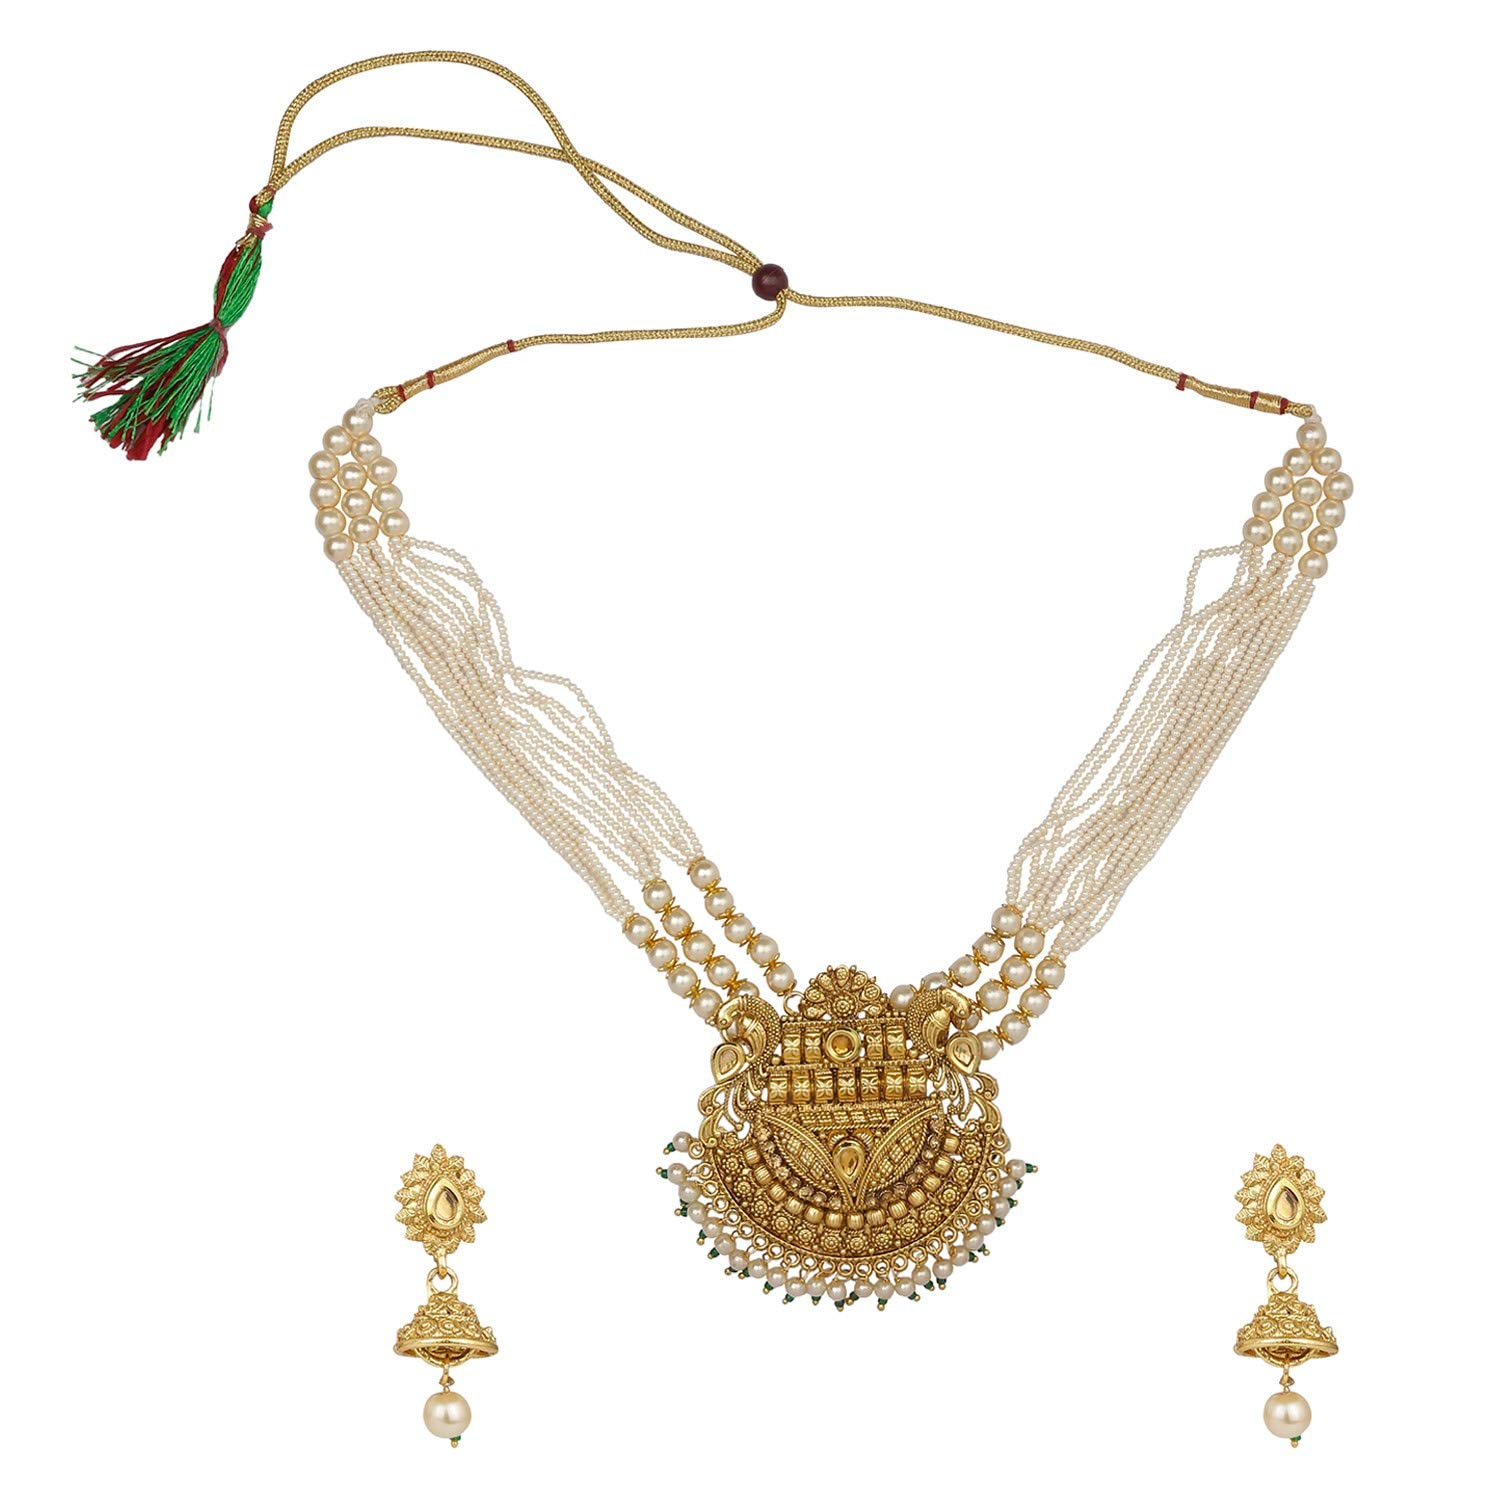 Efulgenz Indian Bollywood Traditional 14 K Gold Plated Crystal Kundan Pearl Beaded Wedding Temple Choker Necklace Earrings Jewelry Set Jaipur Art Jewellery MNT561